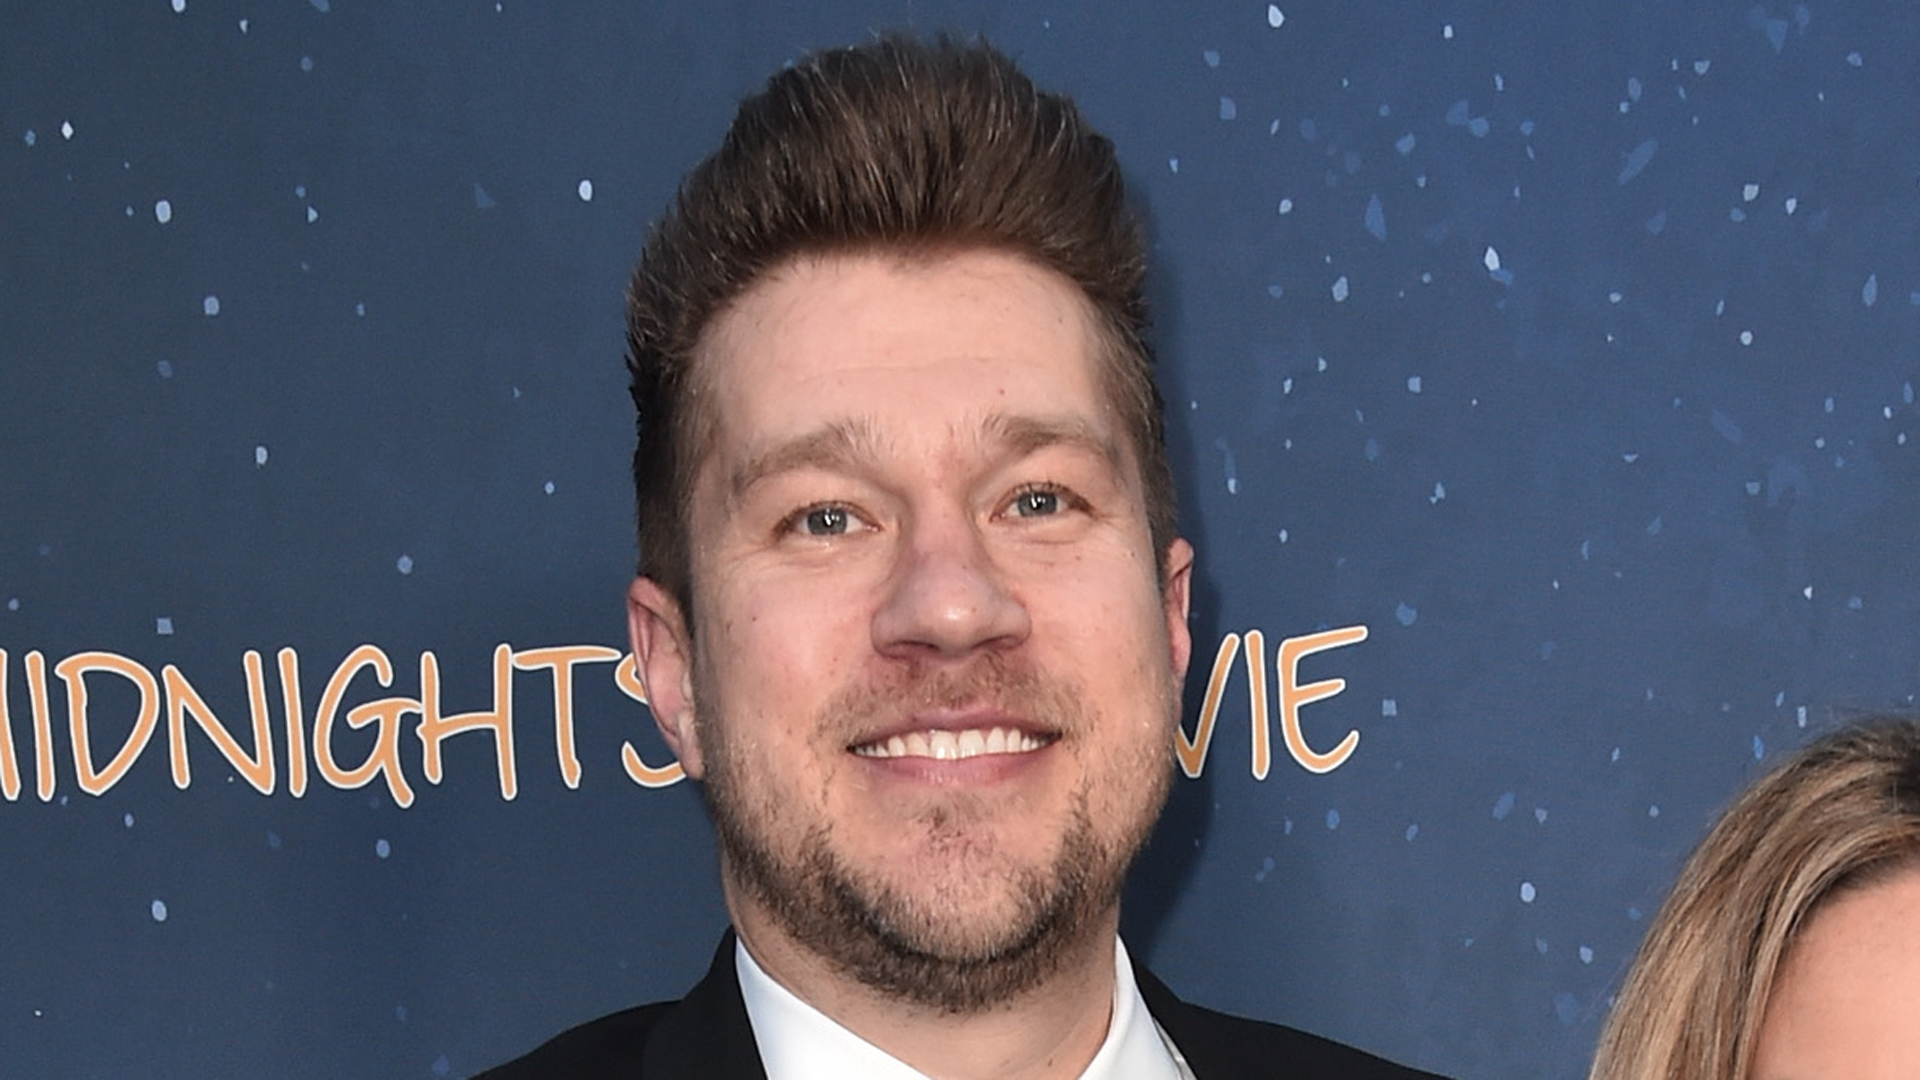 """Director Scott Speer attends Global Road Entertainment's world premiere of """"Midnight Sun"""" at ArcLight Hollywood on March 15, 2018, in Hollywood. (Credit: Alberto E. Rodriguez/Getty Images)"""